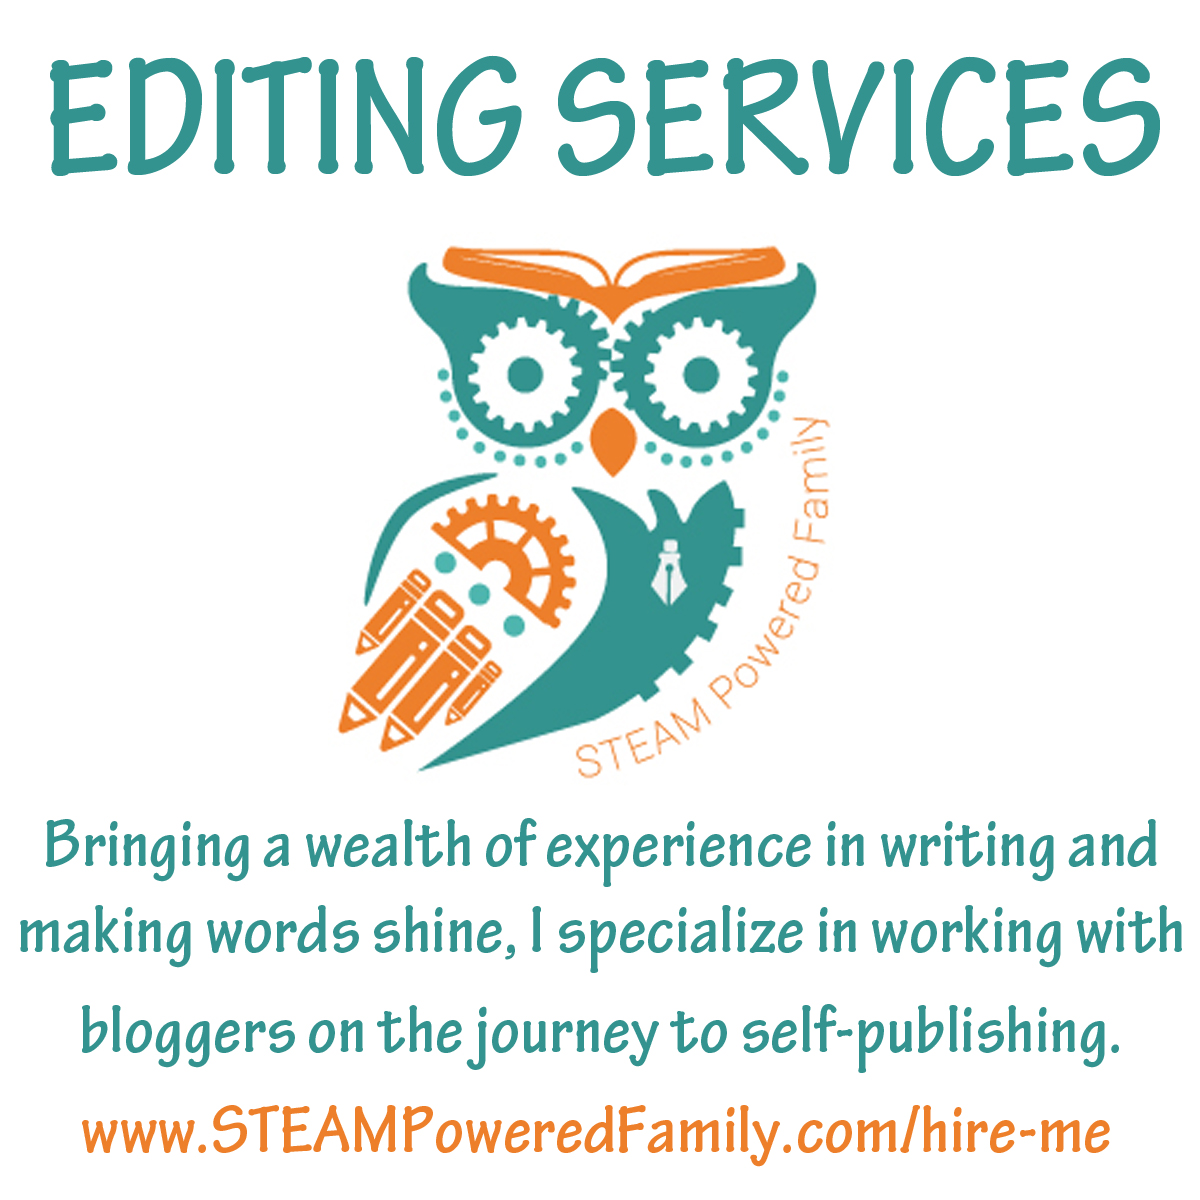 Editing Services From STEAM Powered Family - specializing in bloggers on the journey to self-publishing